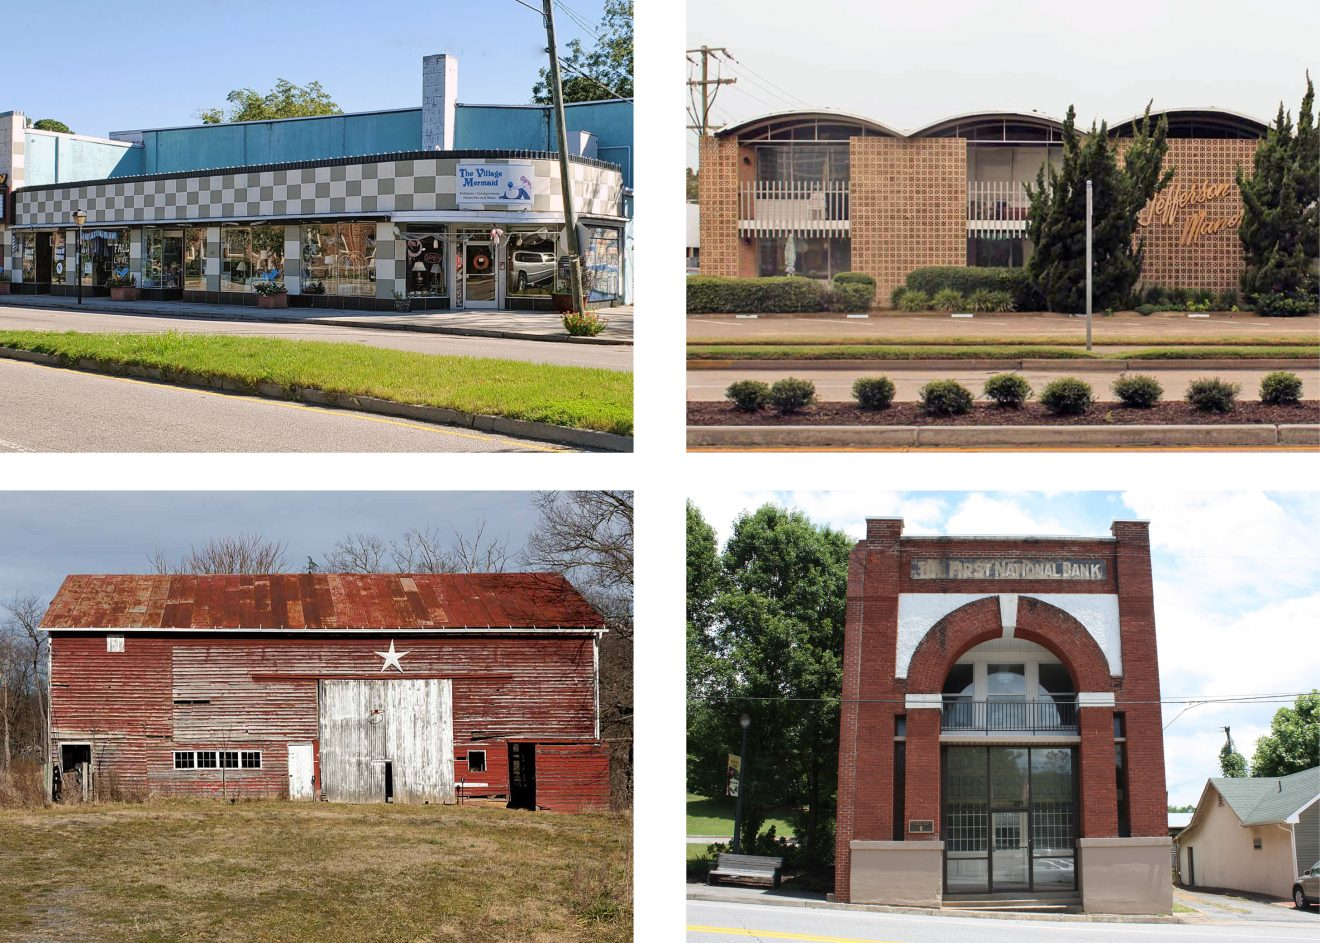 Four buildings to be nominated to VLR and NRHP in March.